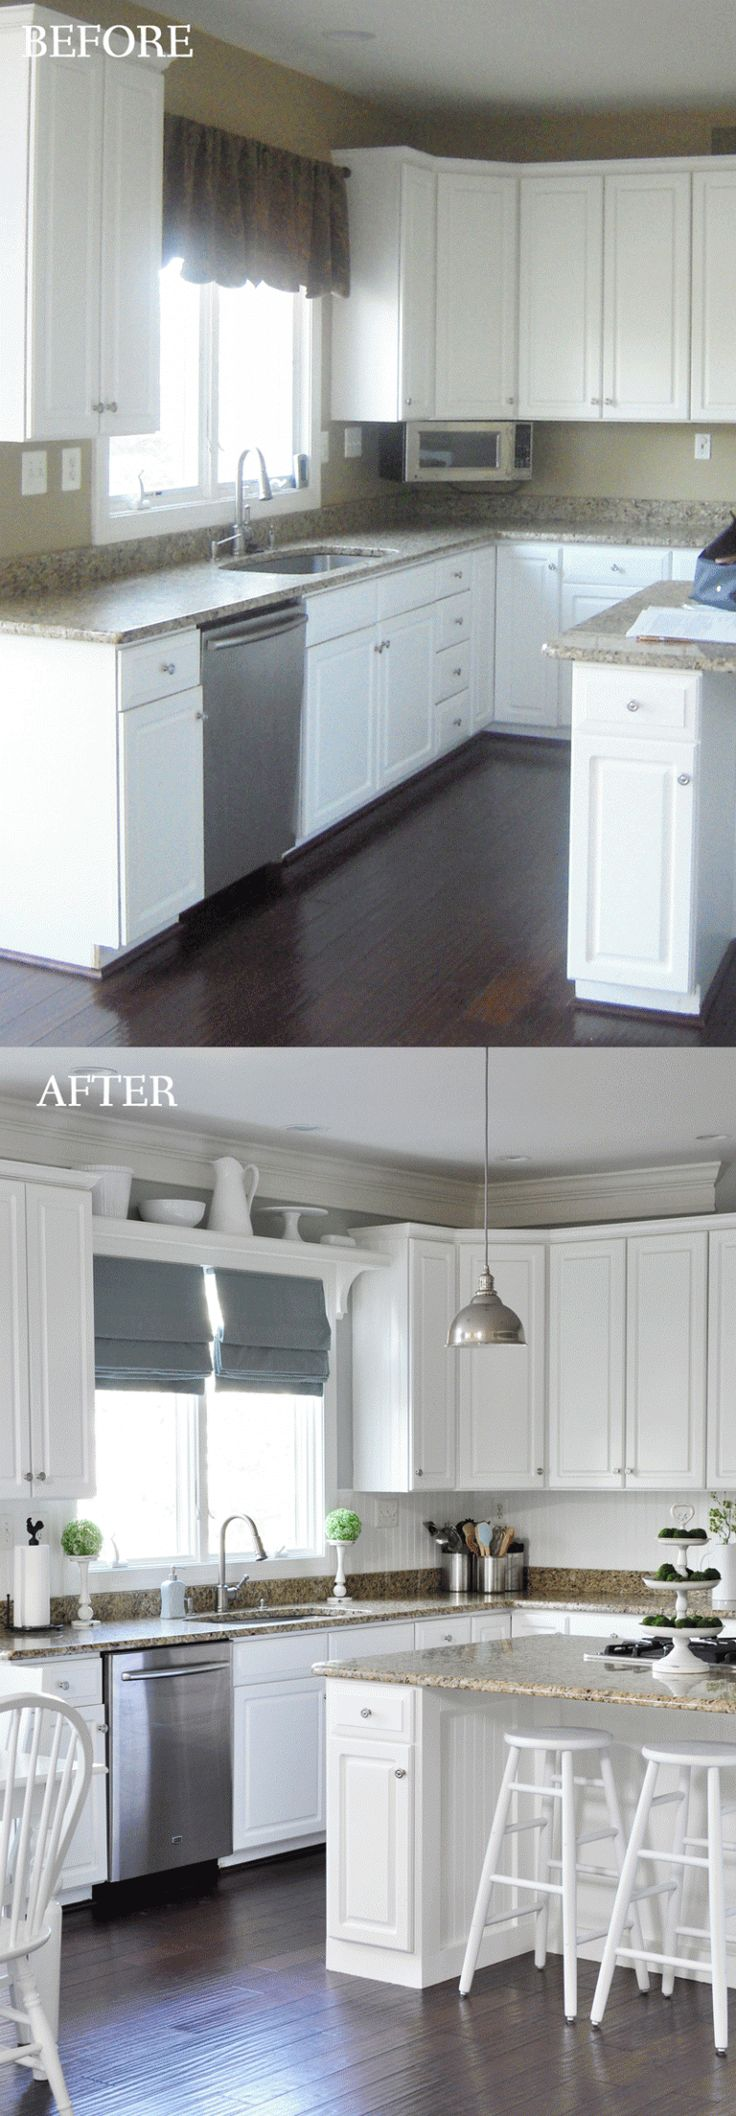 Adding trim to the end of the cabinets, plus that shelf over the sink goes perfectly with the roman shades